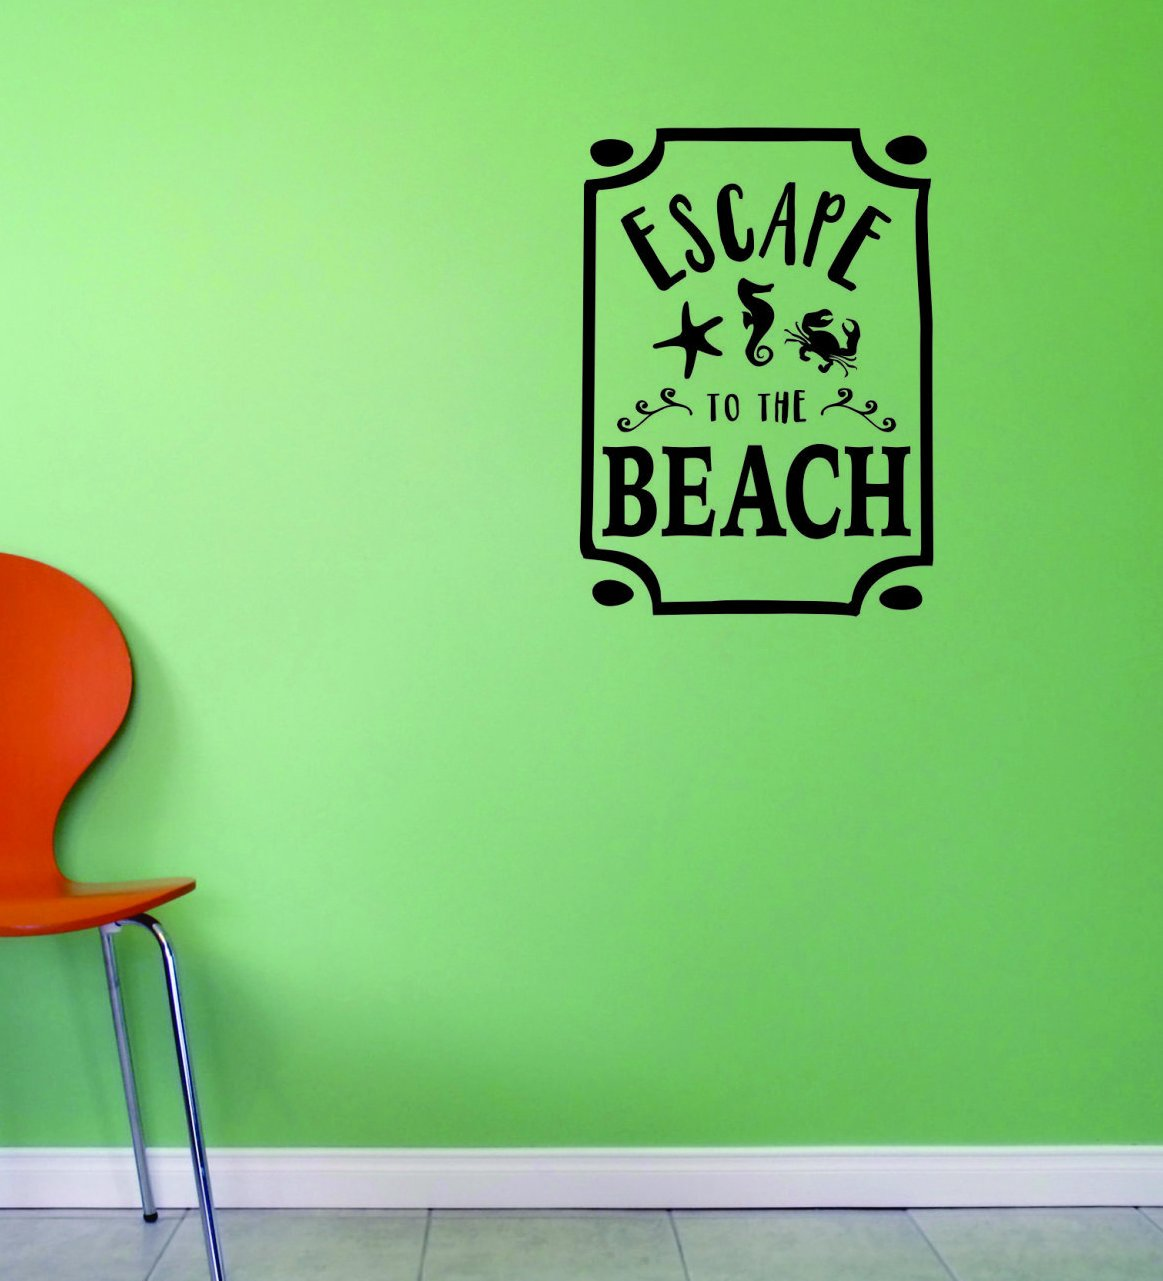 Black 16 x 16, Design with Vinyl JER 2003 2 Hot New Decals Escape to The Beach Wall Art Size x 16 Inches Color